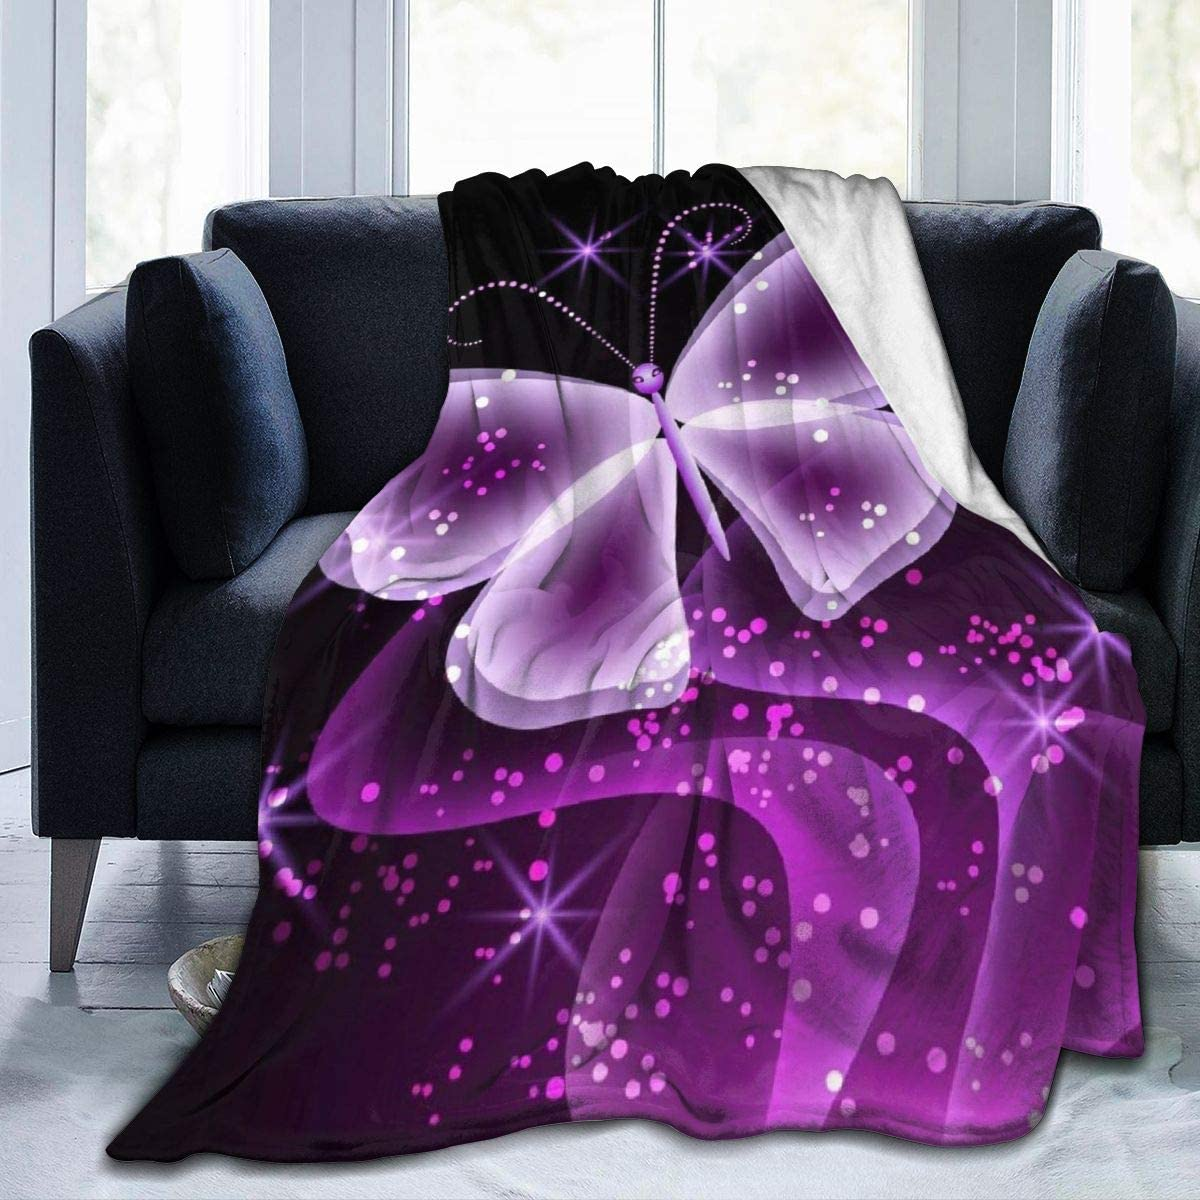 Butterfly Blanket Purple Printed Indefinitely Limited price sale Lightweight Blankets